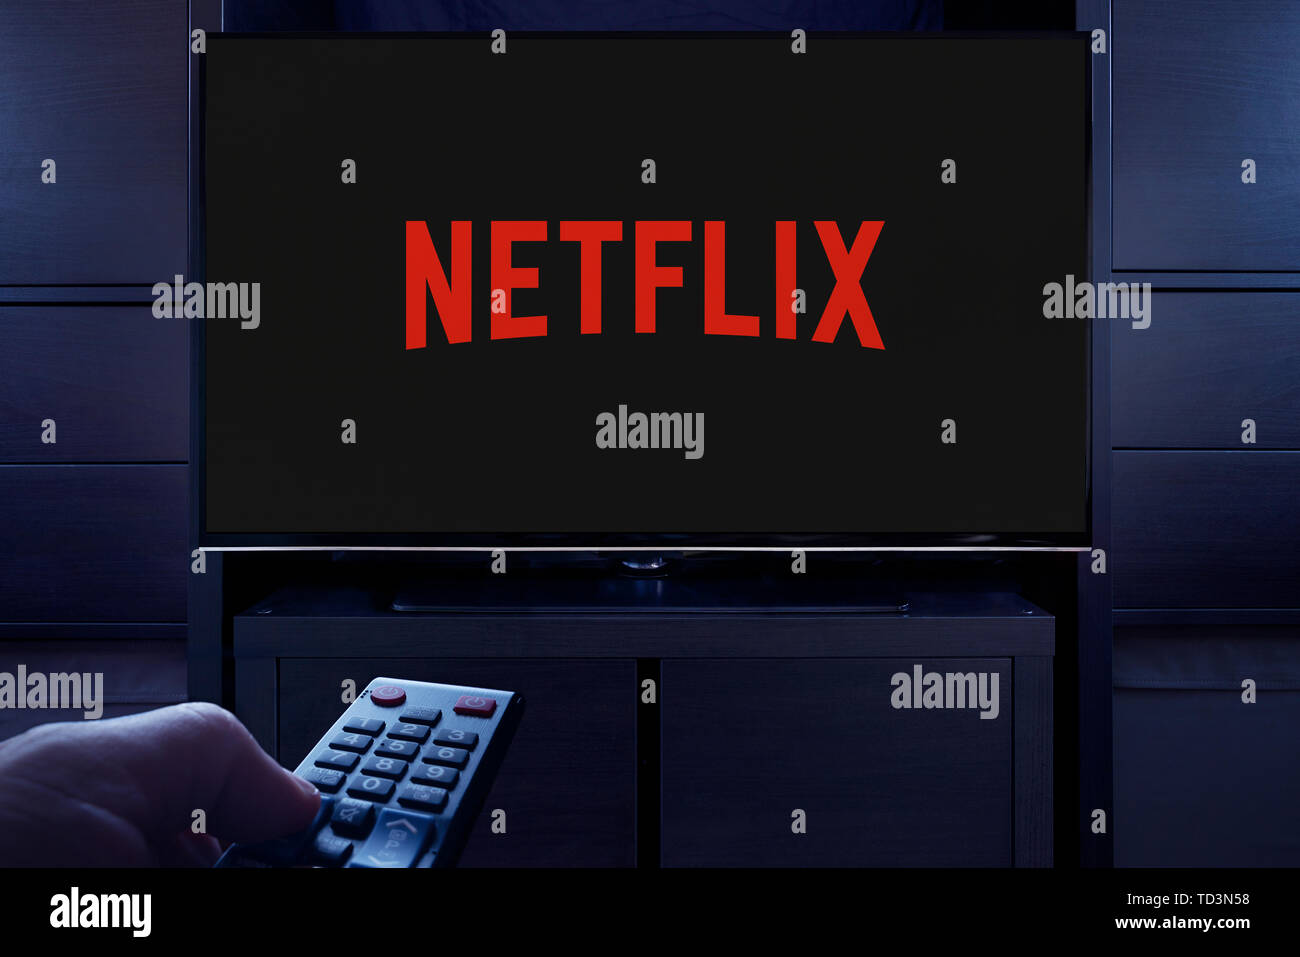 A man points a TV remote at the television which displays the logo for the Netflix on demand video streaming service (Editorial use only). Stock Photo